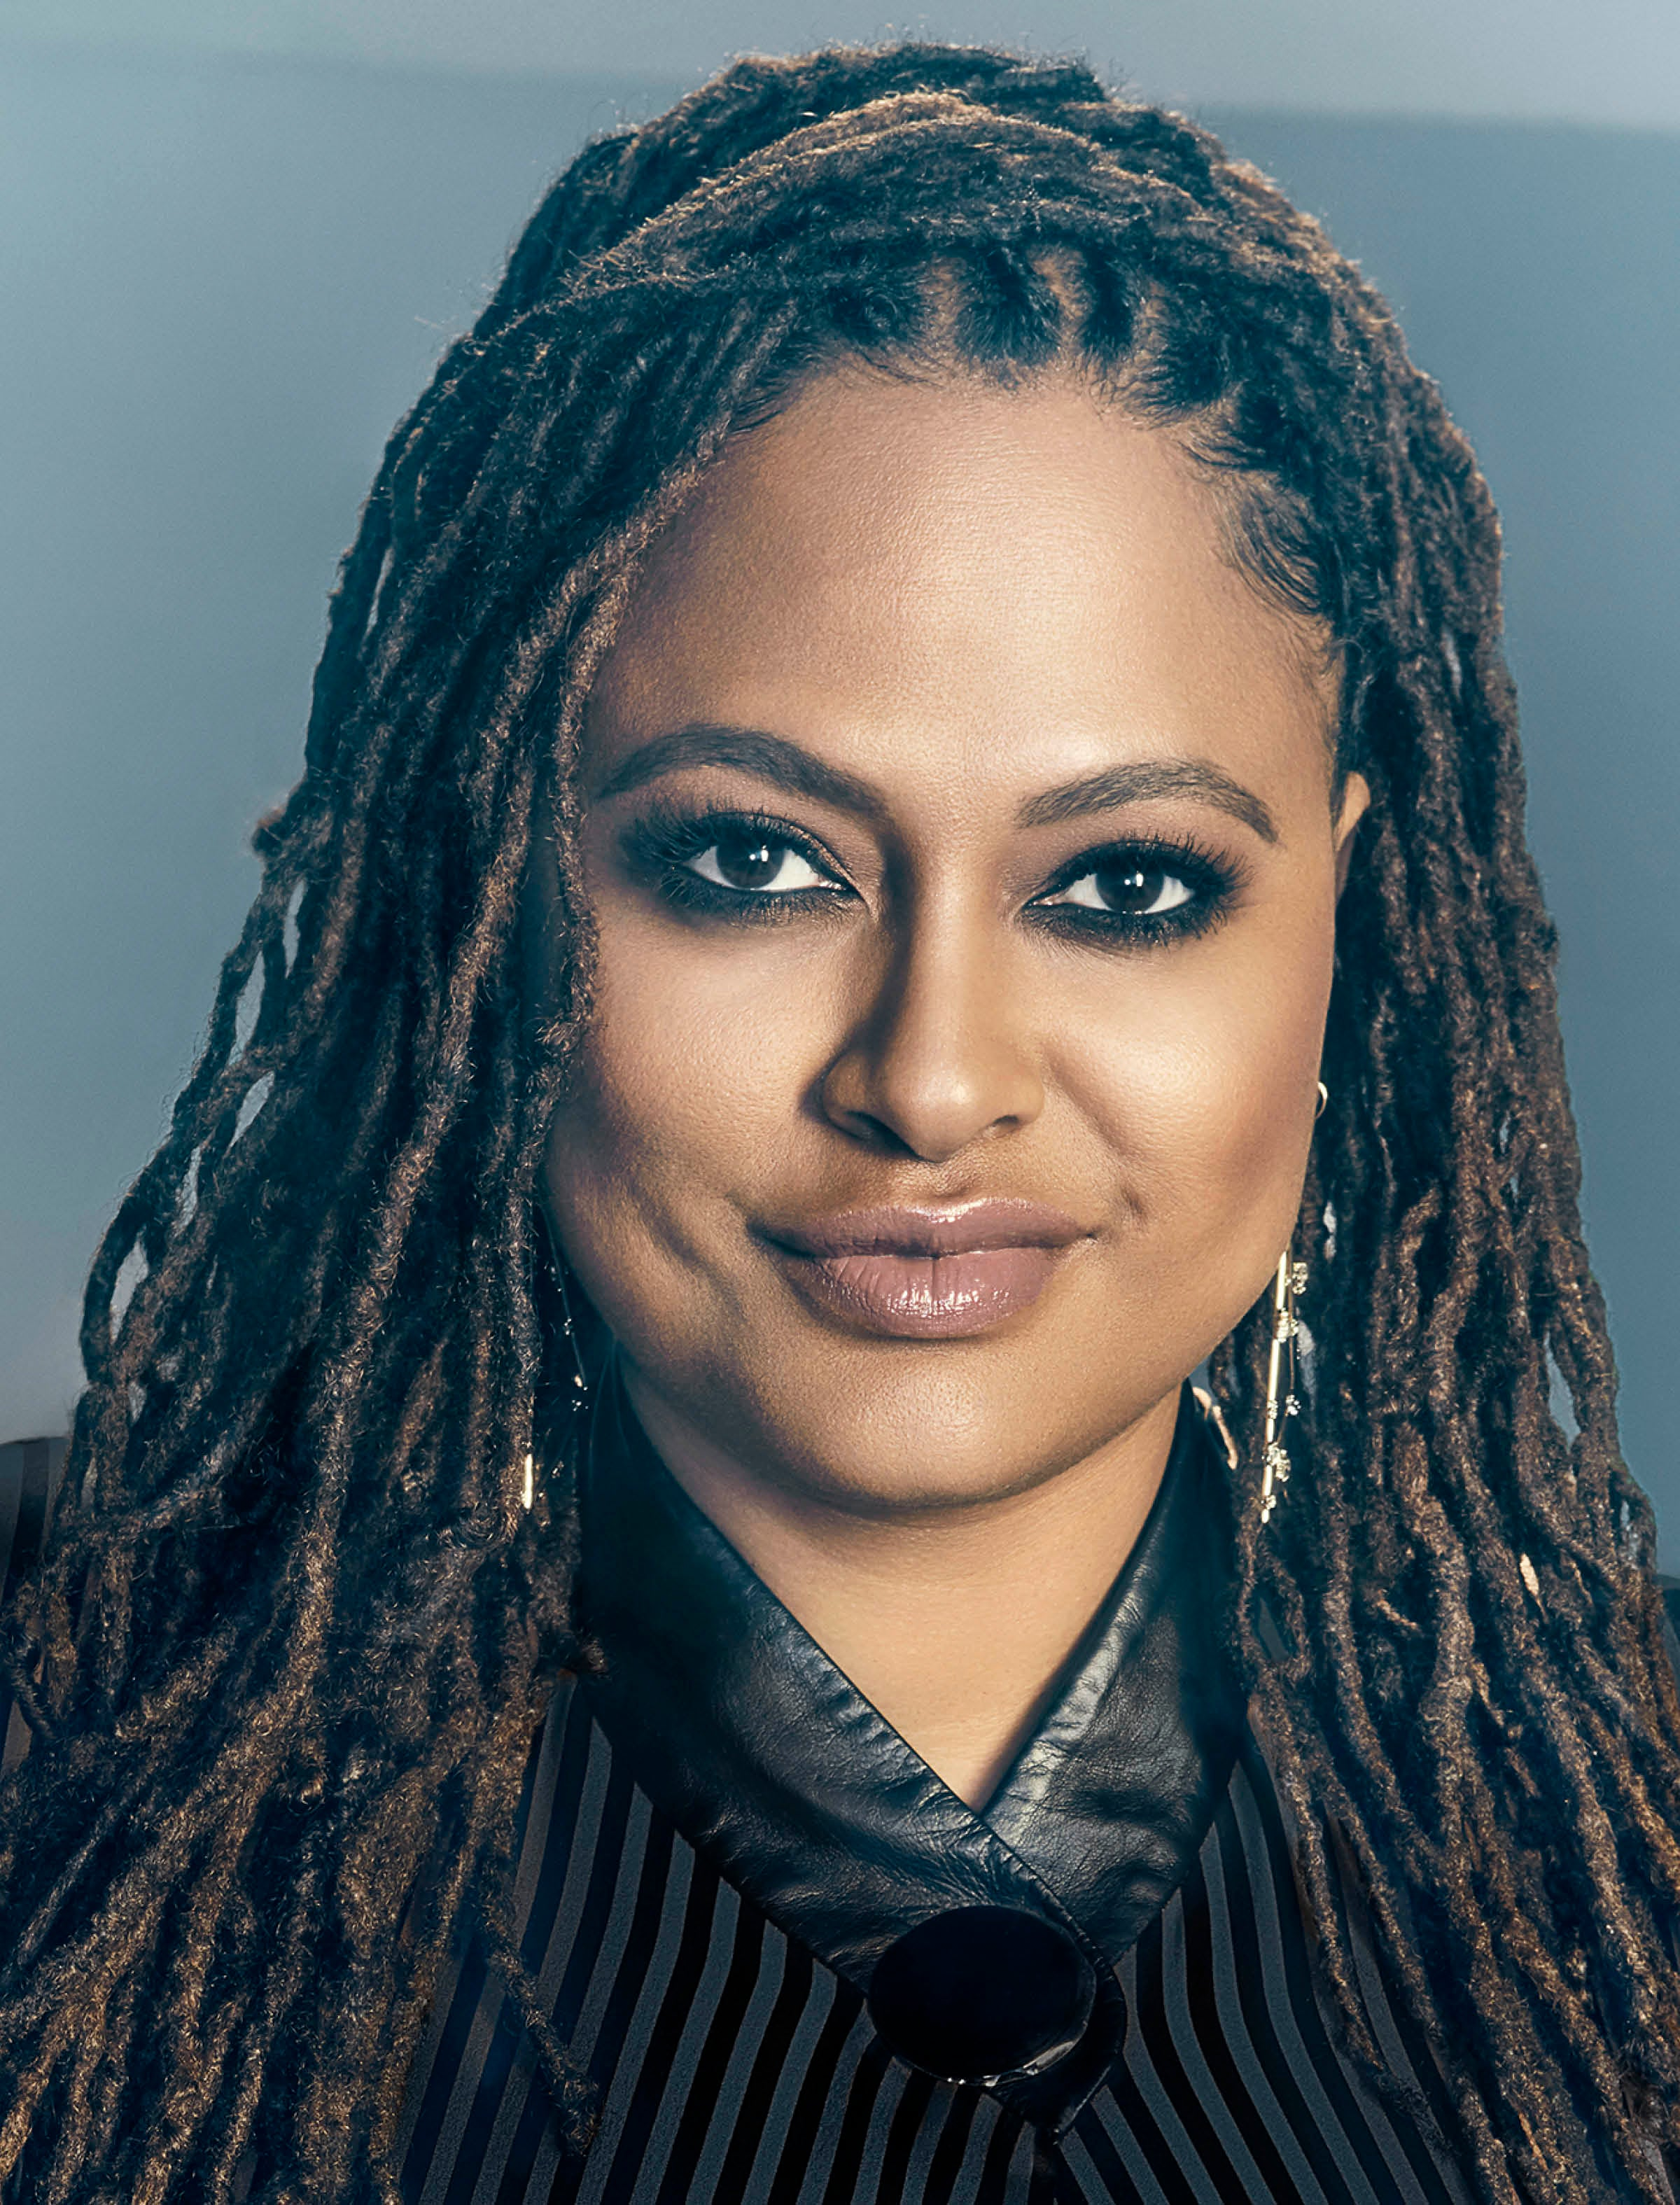 Ava DuVernay Set To Direct DC's 'The New Gods' For Warner Bros